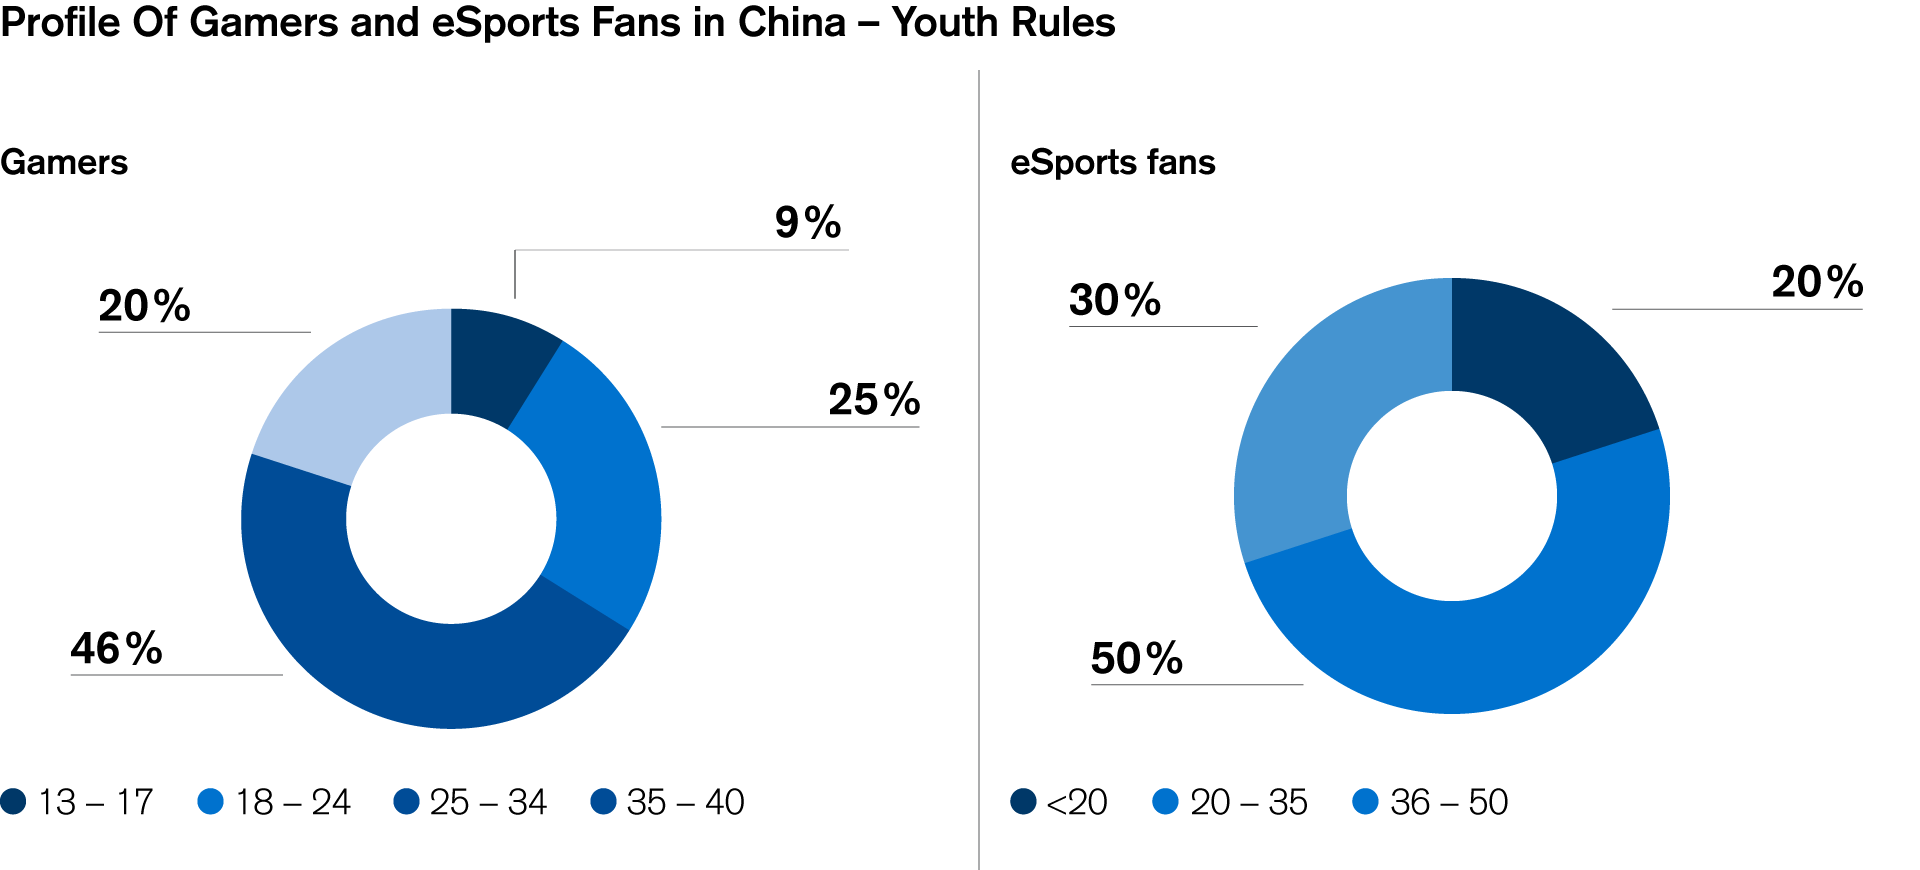 Profile of Gamers and eSports Fans in China – Youth Rules